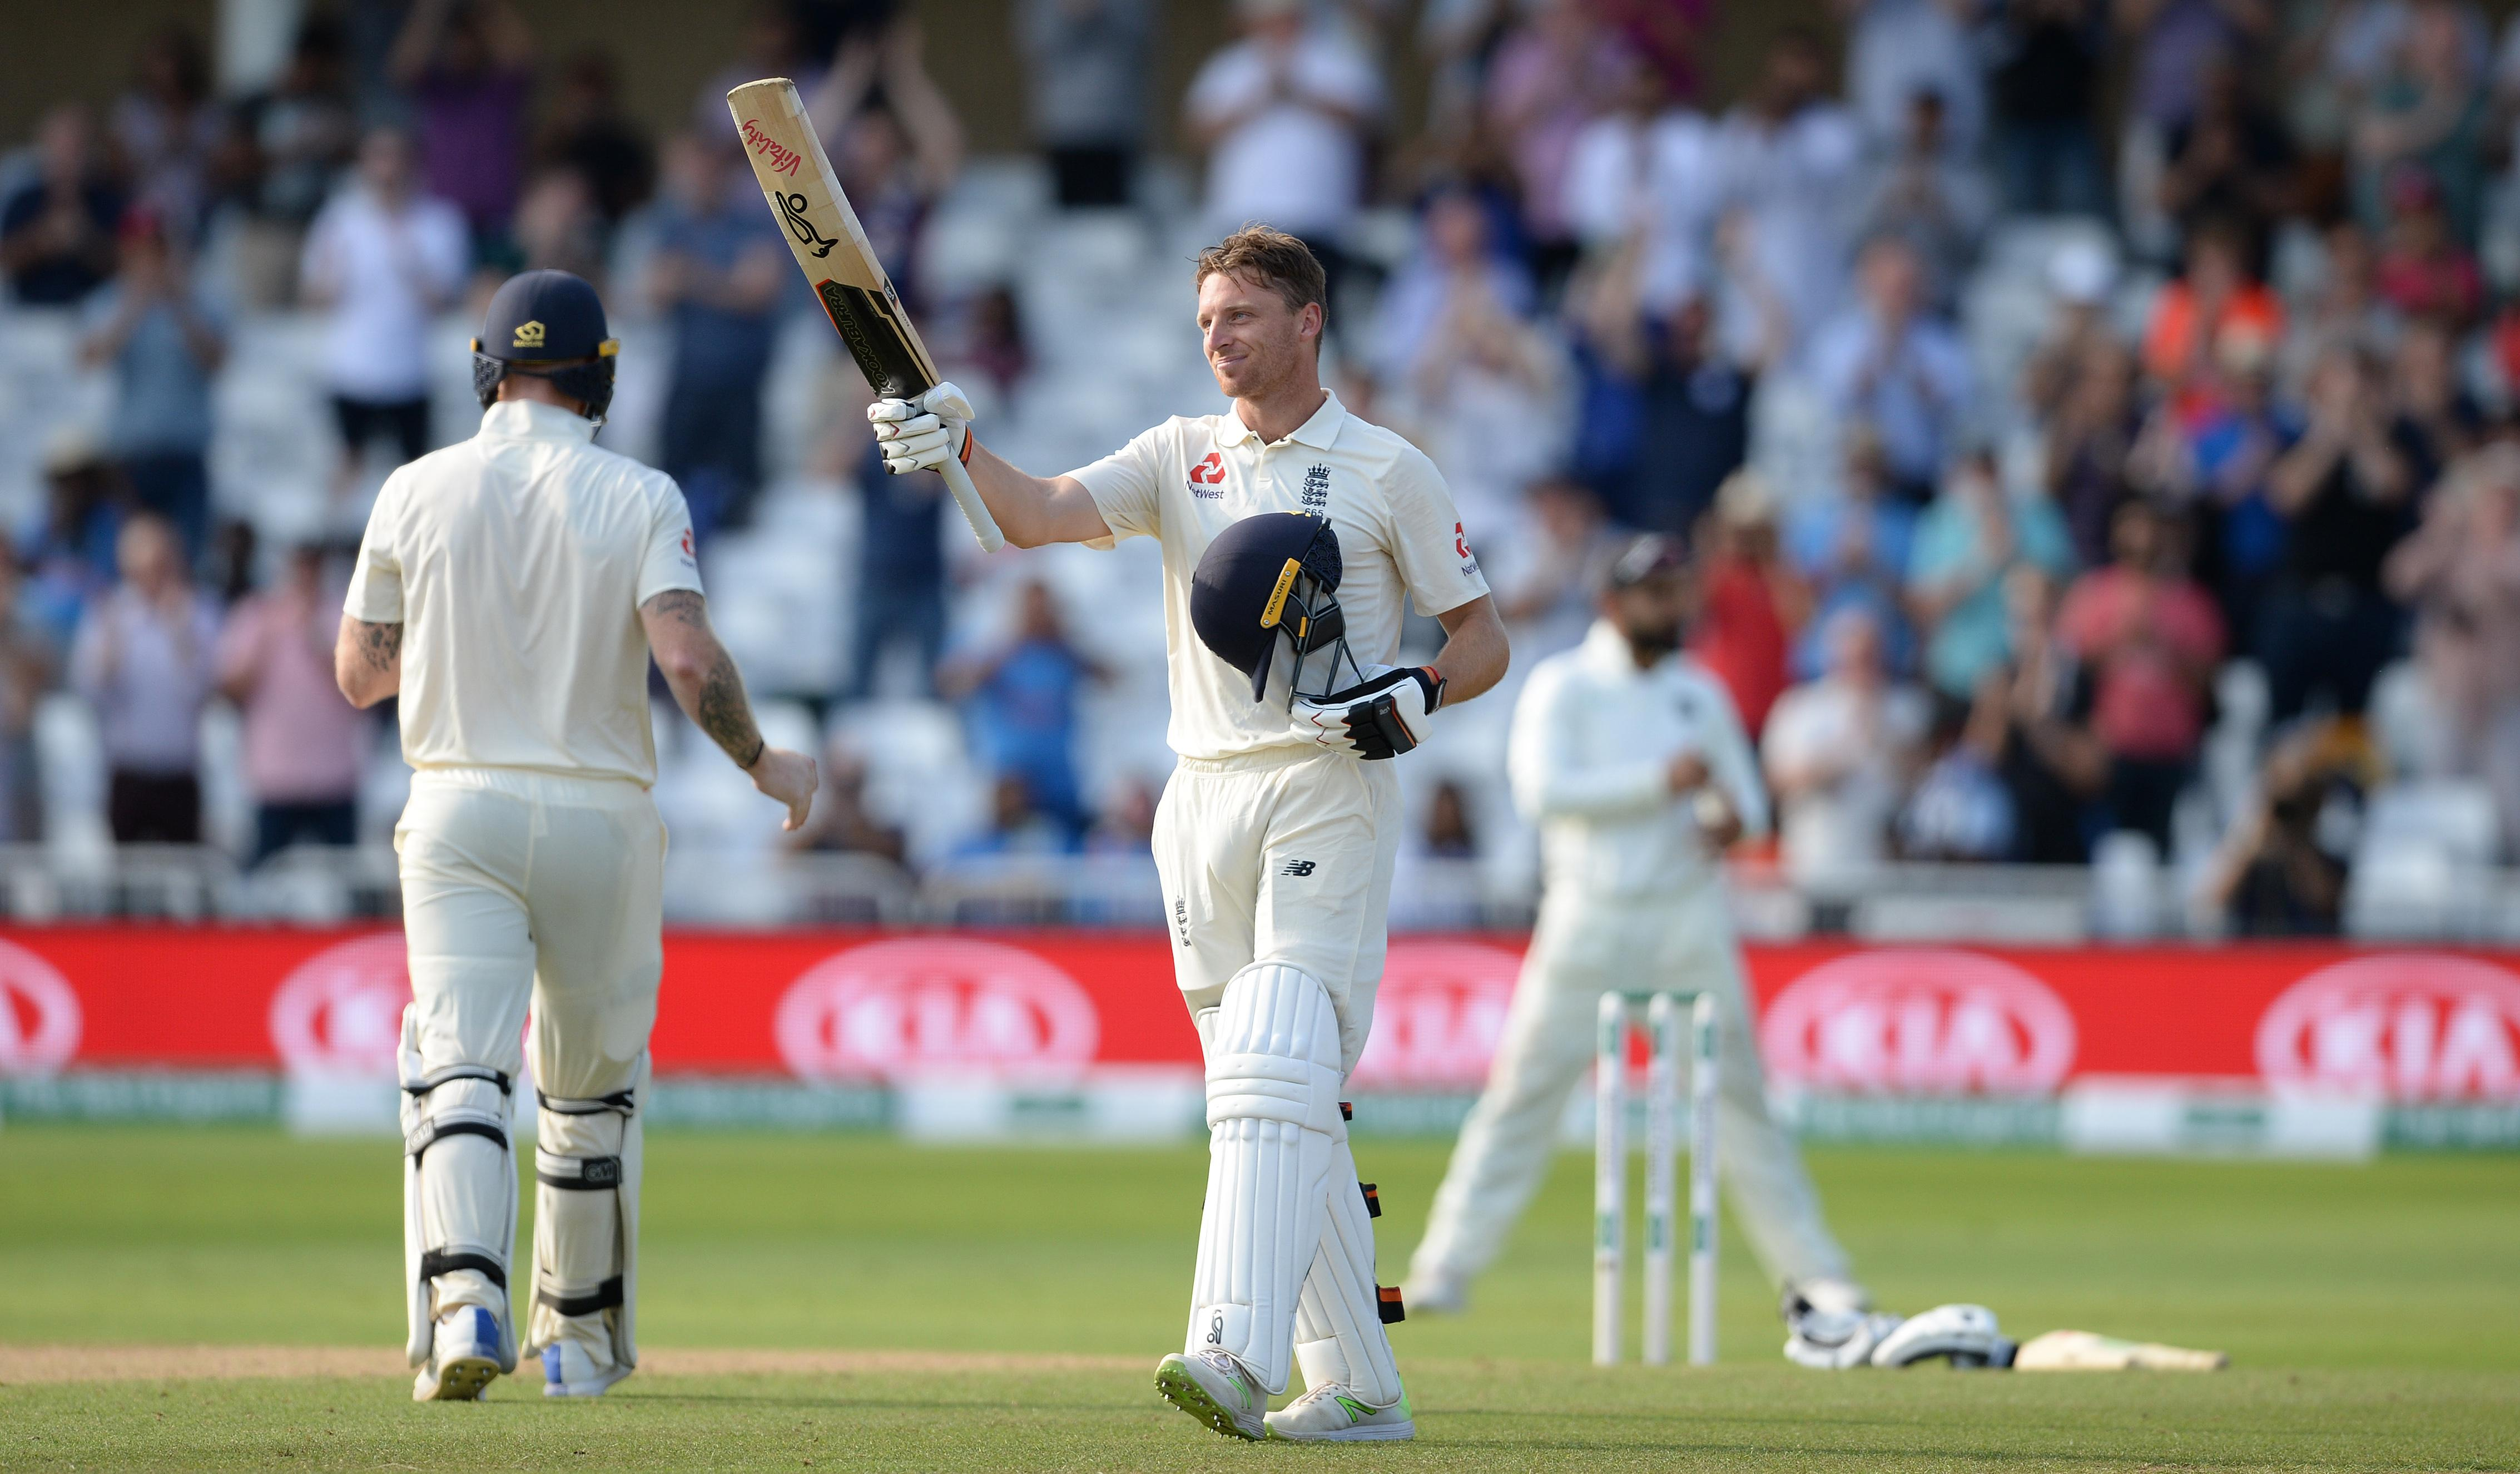 Jos Buttler had spent 18 months on the sidelines of the Test team before his recall